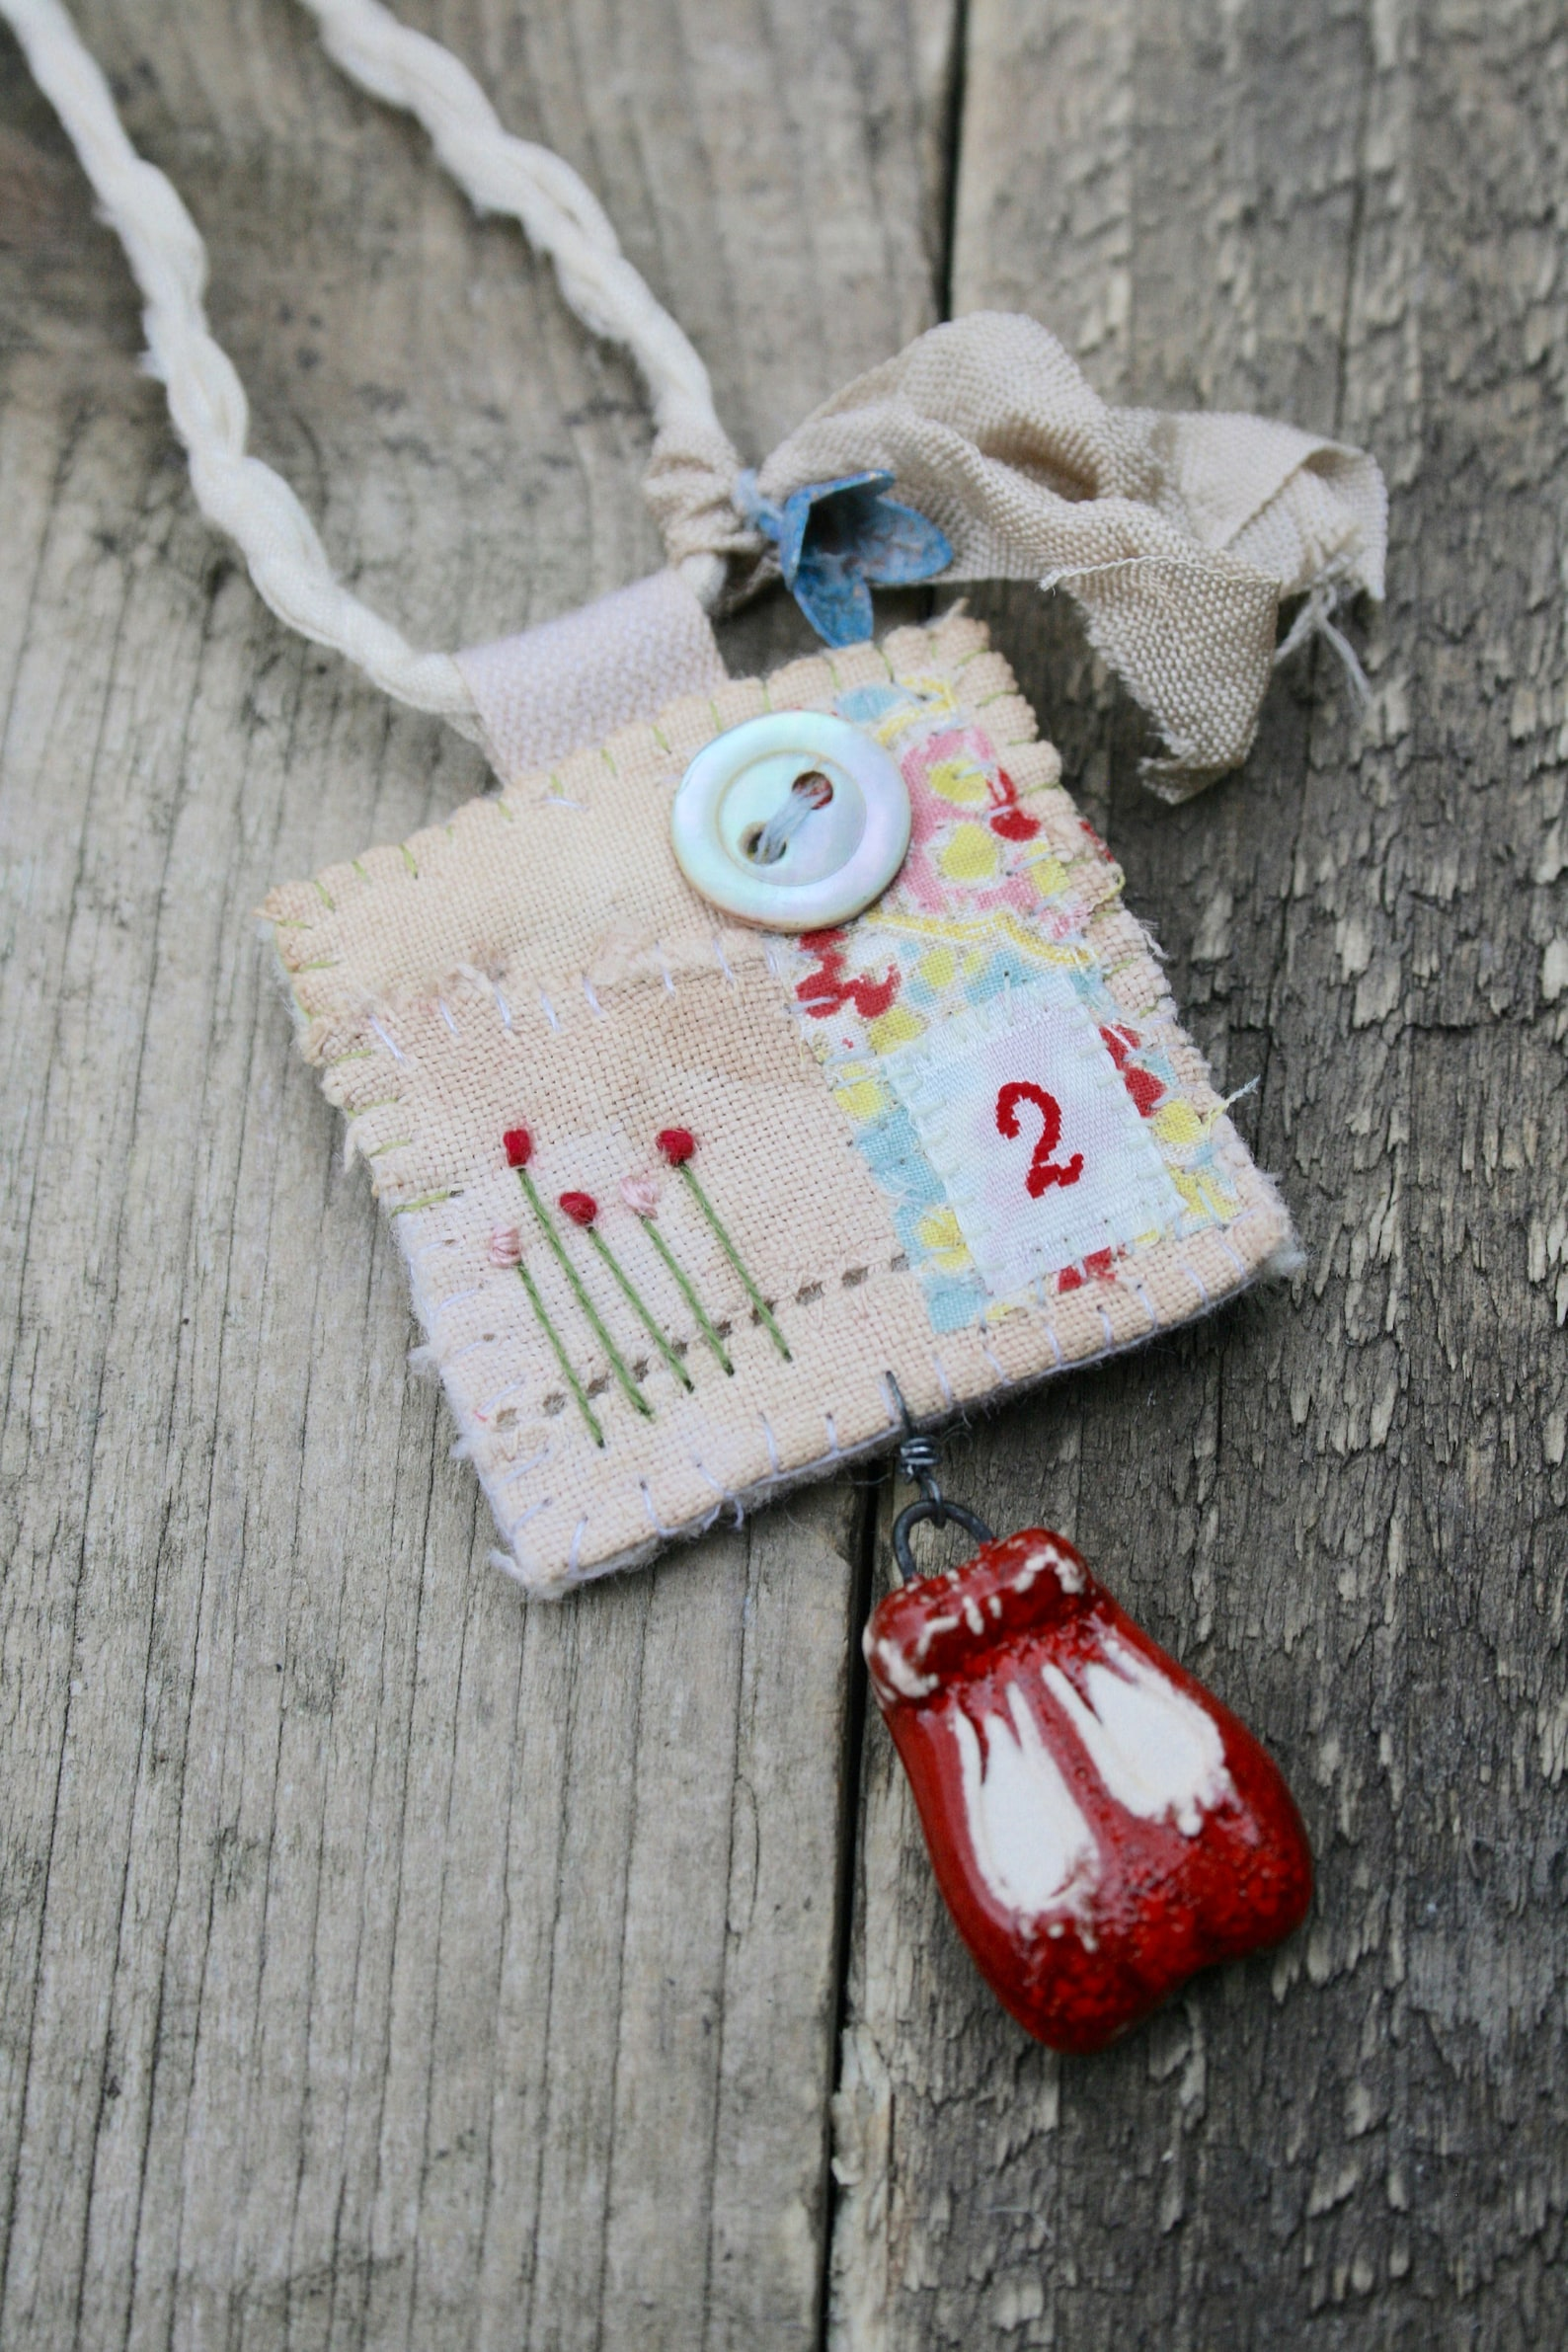 textile pendant, ballet shoe pendant, fabric pendant, fabric necklace, textile art, embroidered pendant, shoe necklace, recycled